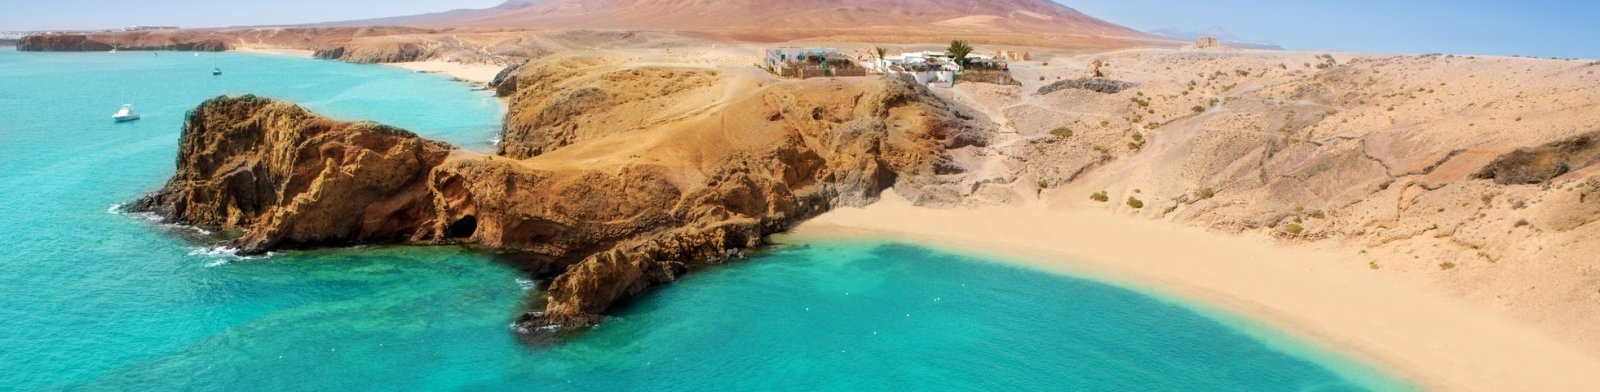 Luxury lanzarote